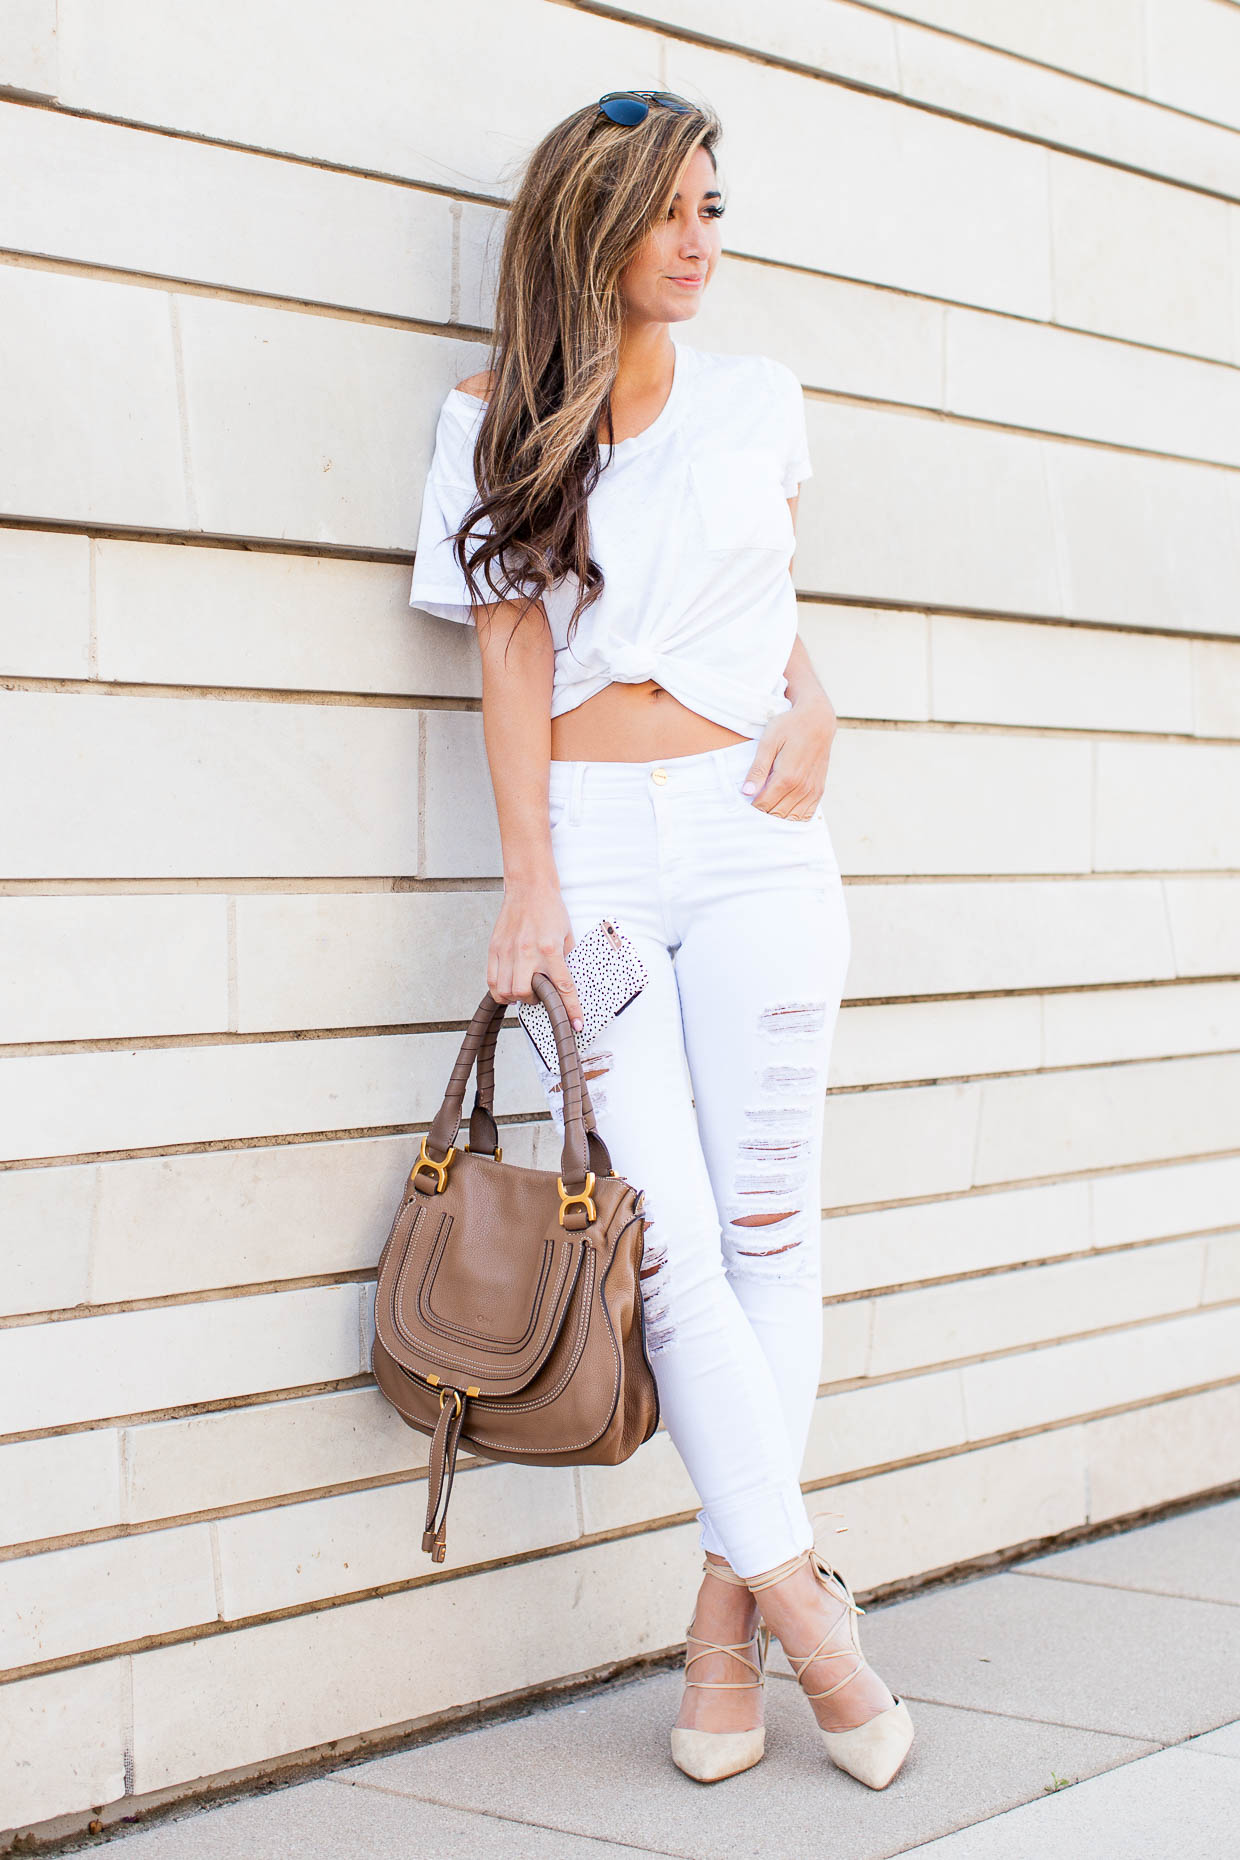 The Darling Detail wears Frame distressed white denim from Nordstrom